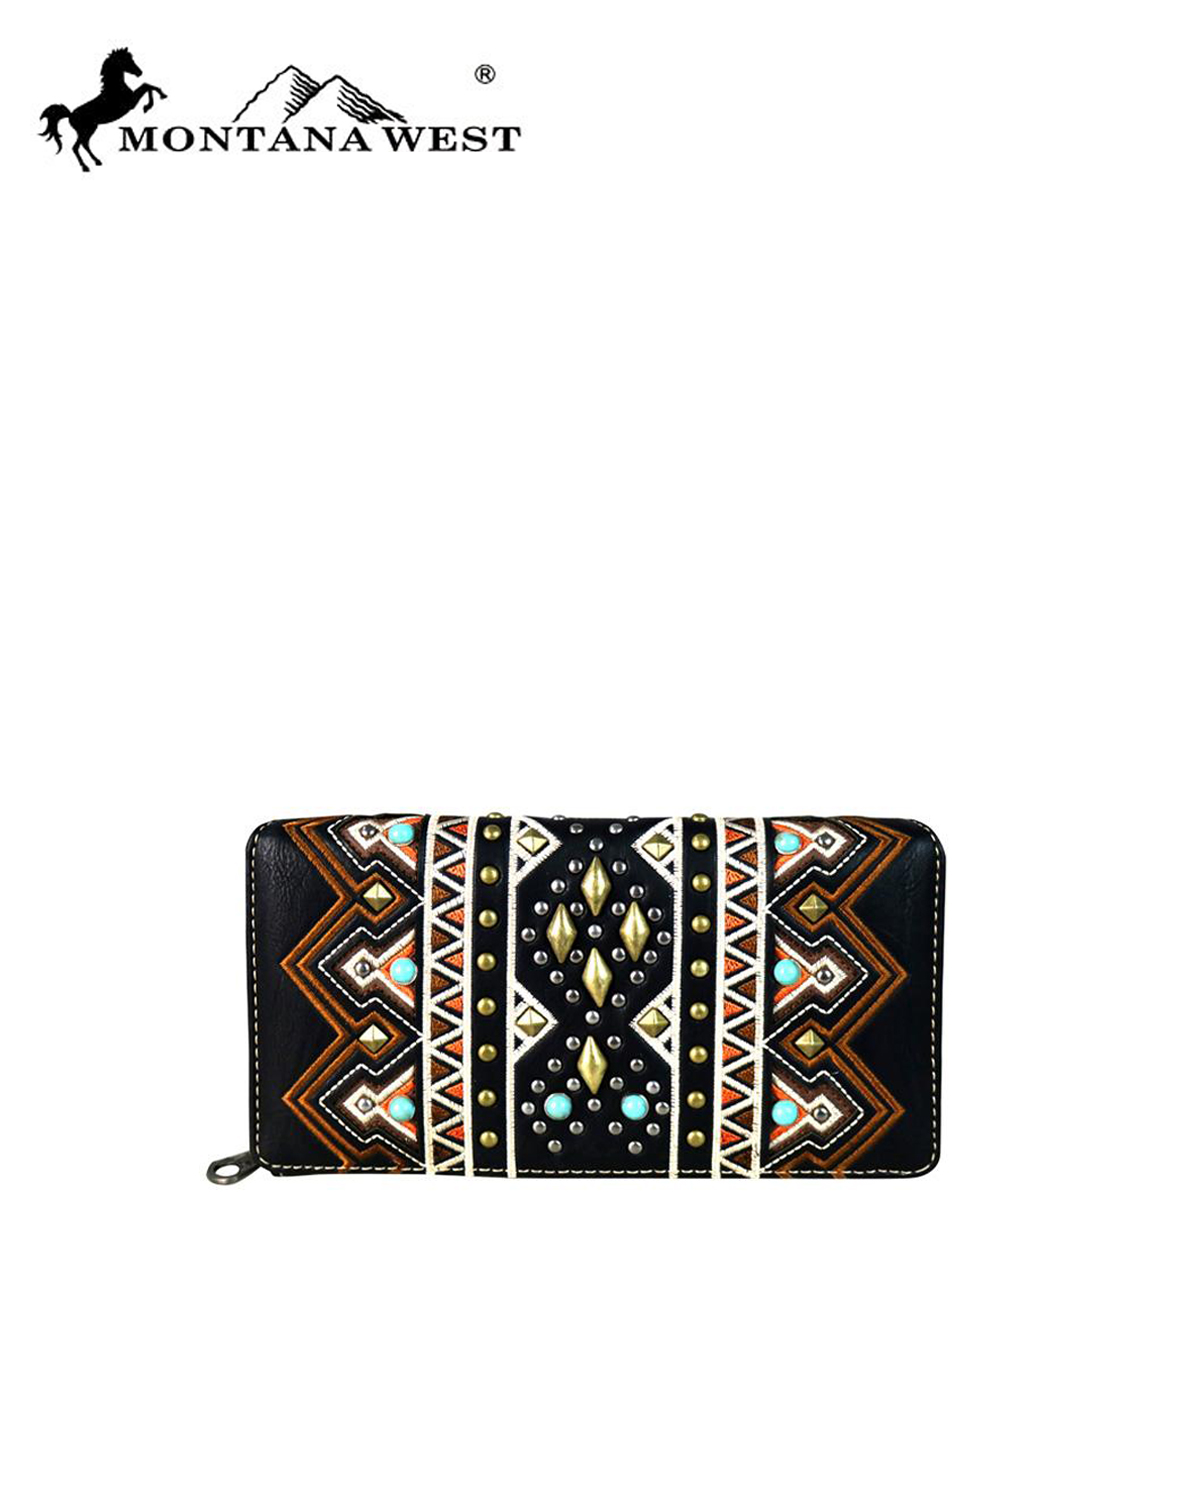 MW652W010(BK)-MW-wholesale-montana-west-wallet-aztec-colorful-embroidered-rivets-turquoise-rhinestones-studs-western(0).jpg